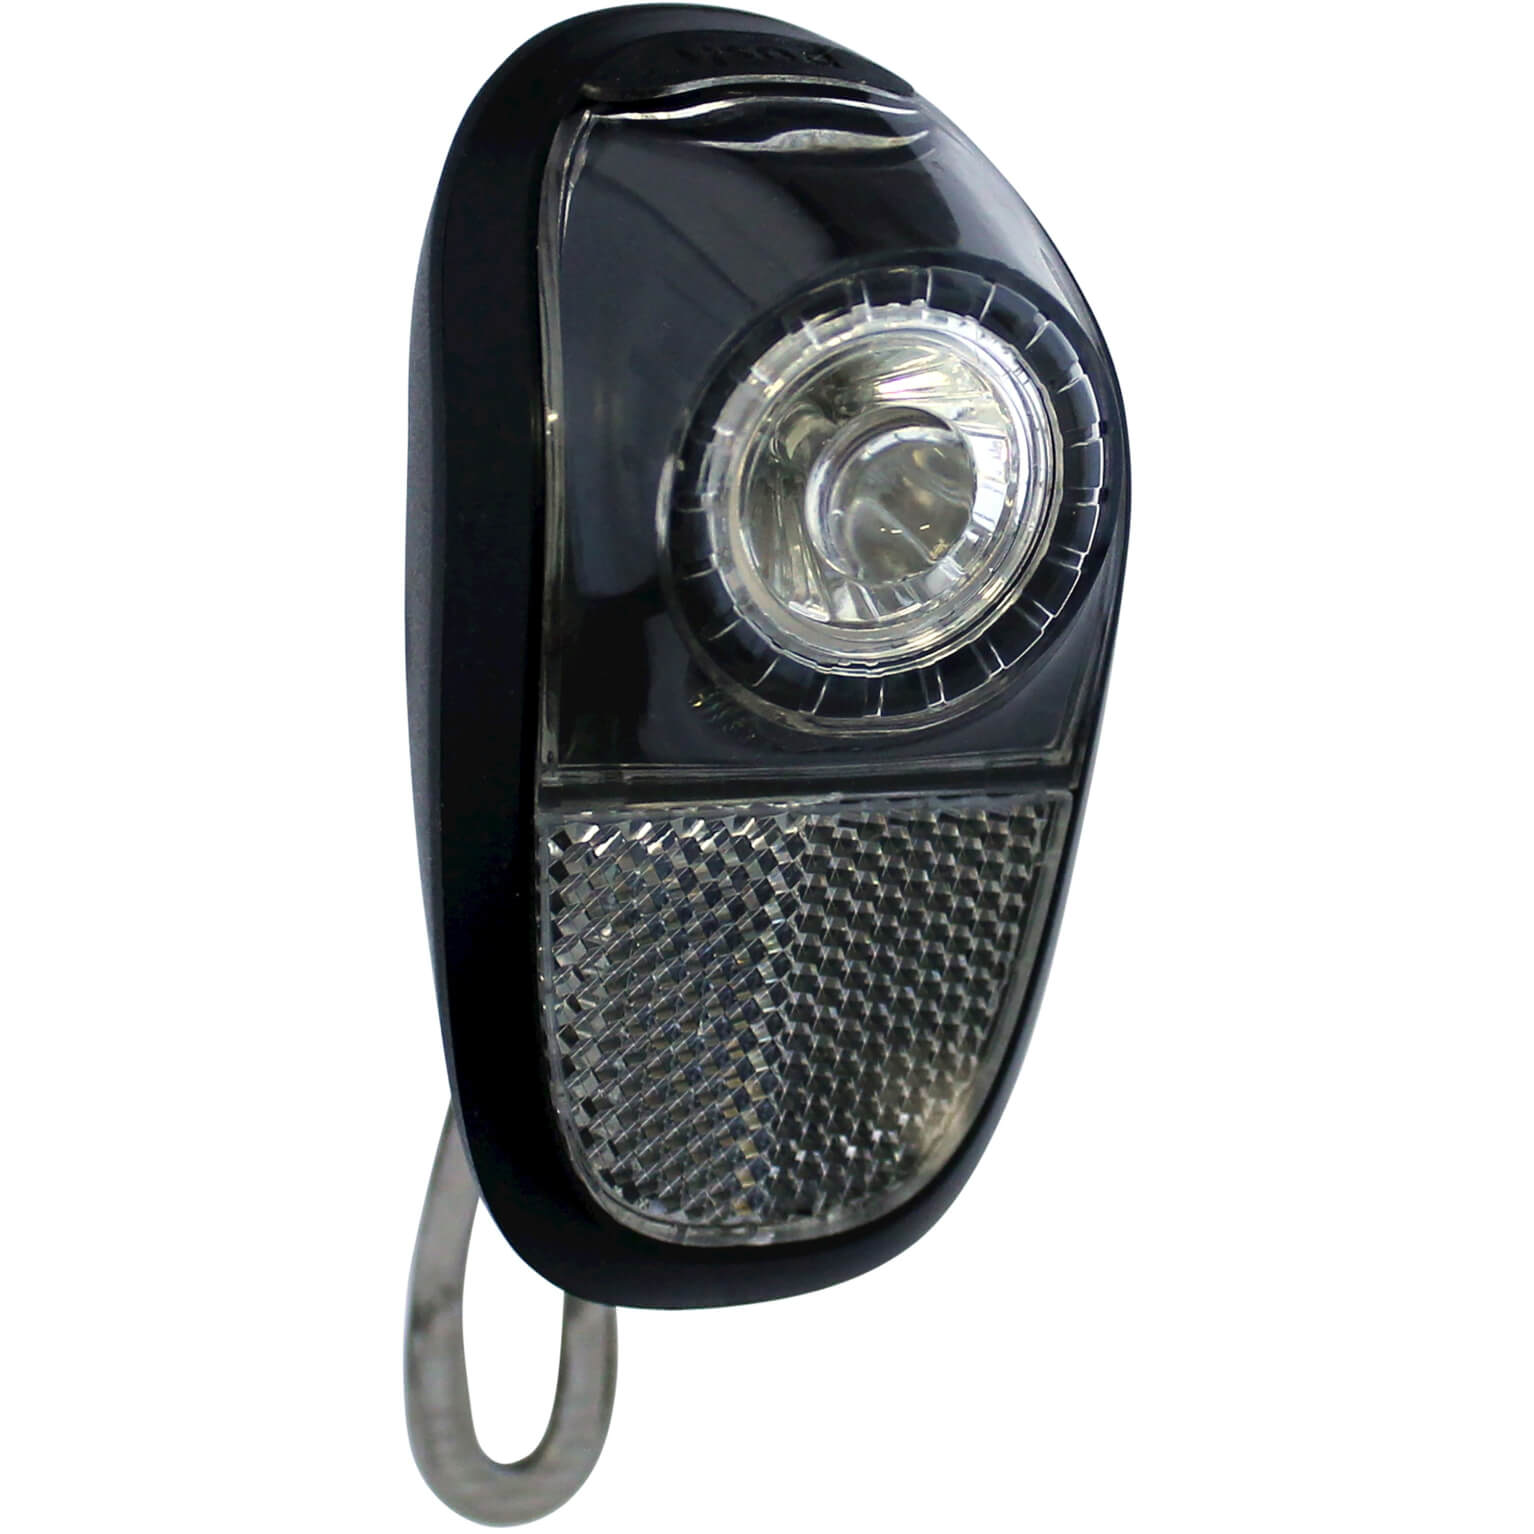 Union Koplamp Mobile Plus LED met Batterijen - Zwart